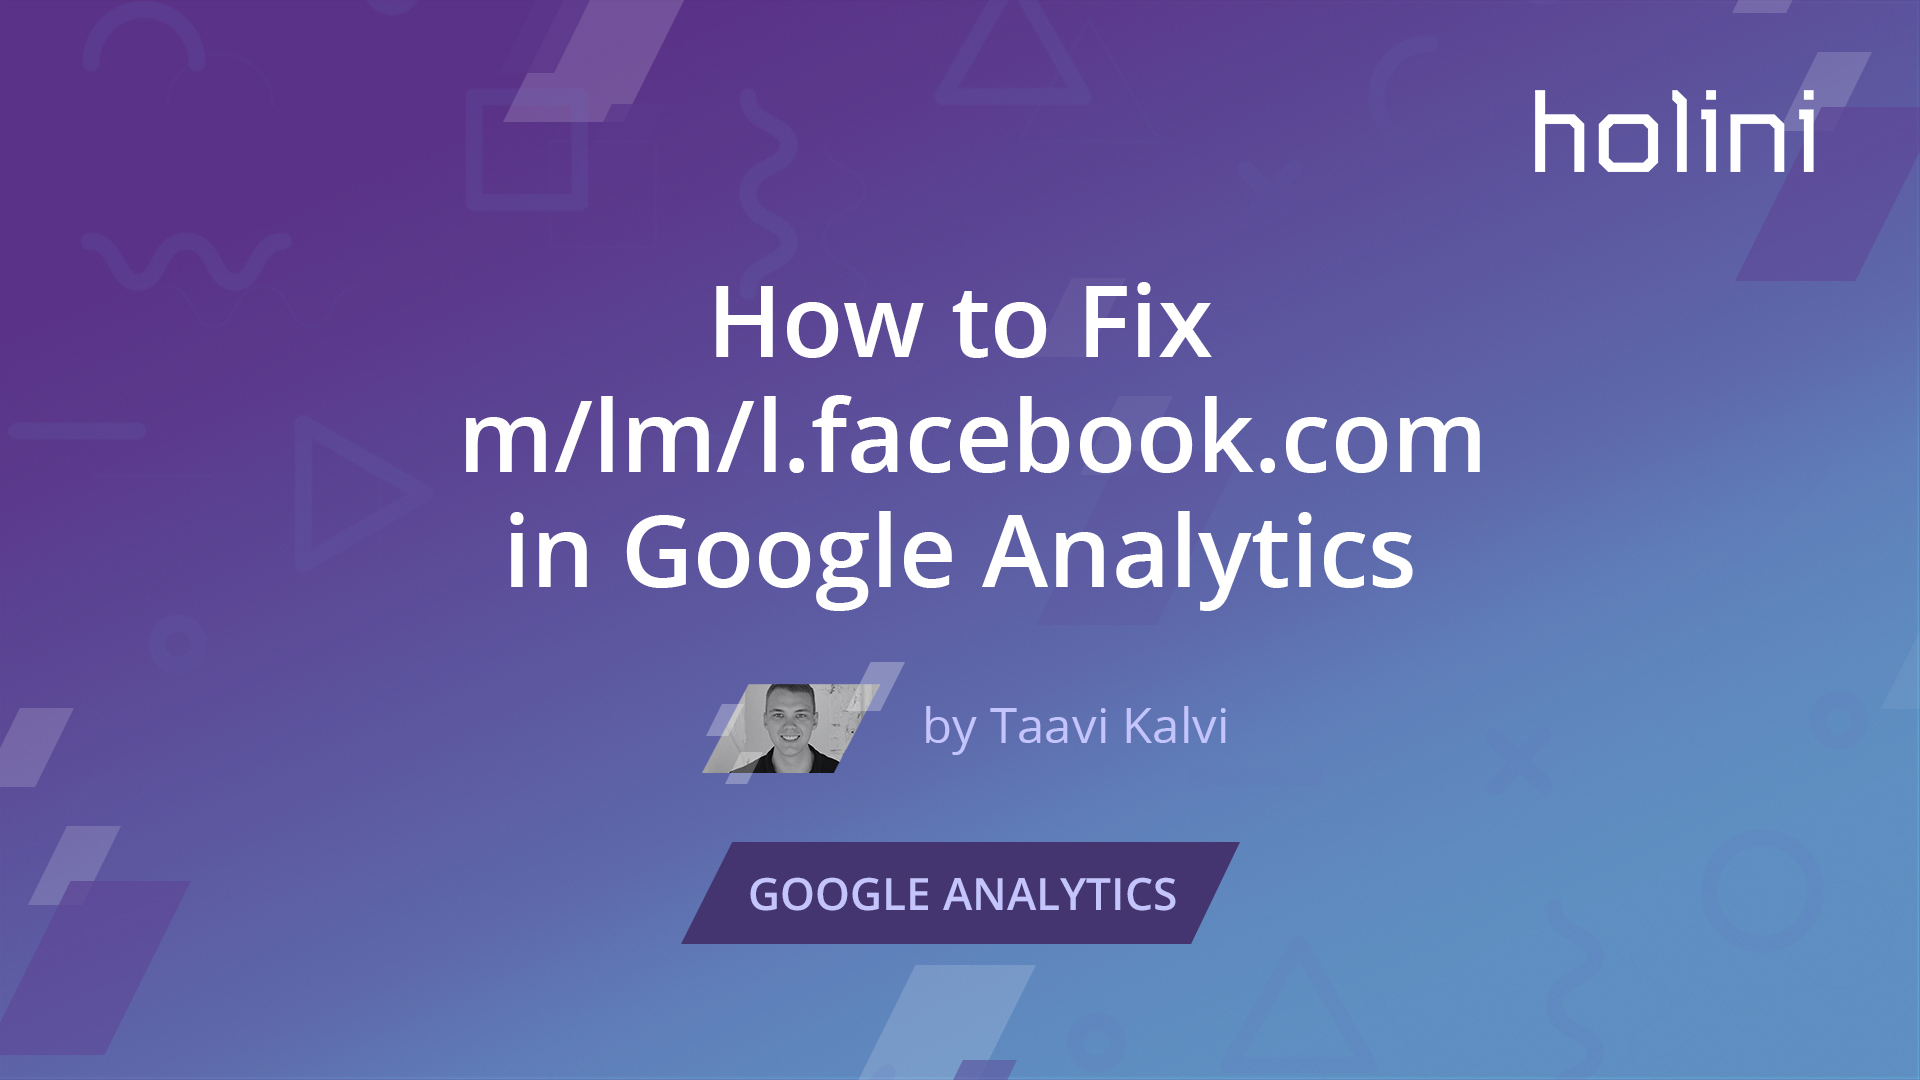 How to Fix m/lm/l facebook com in Google Analytics